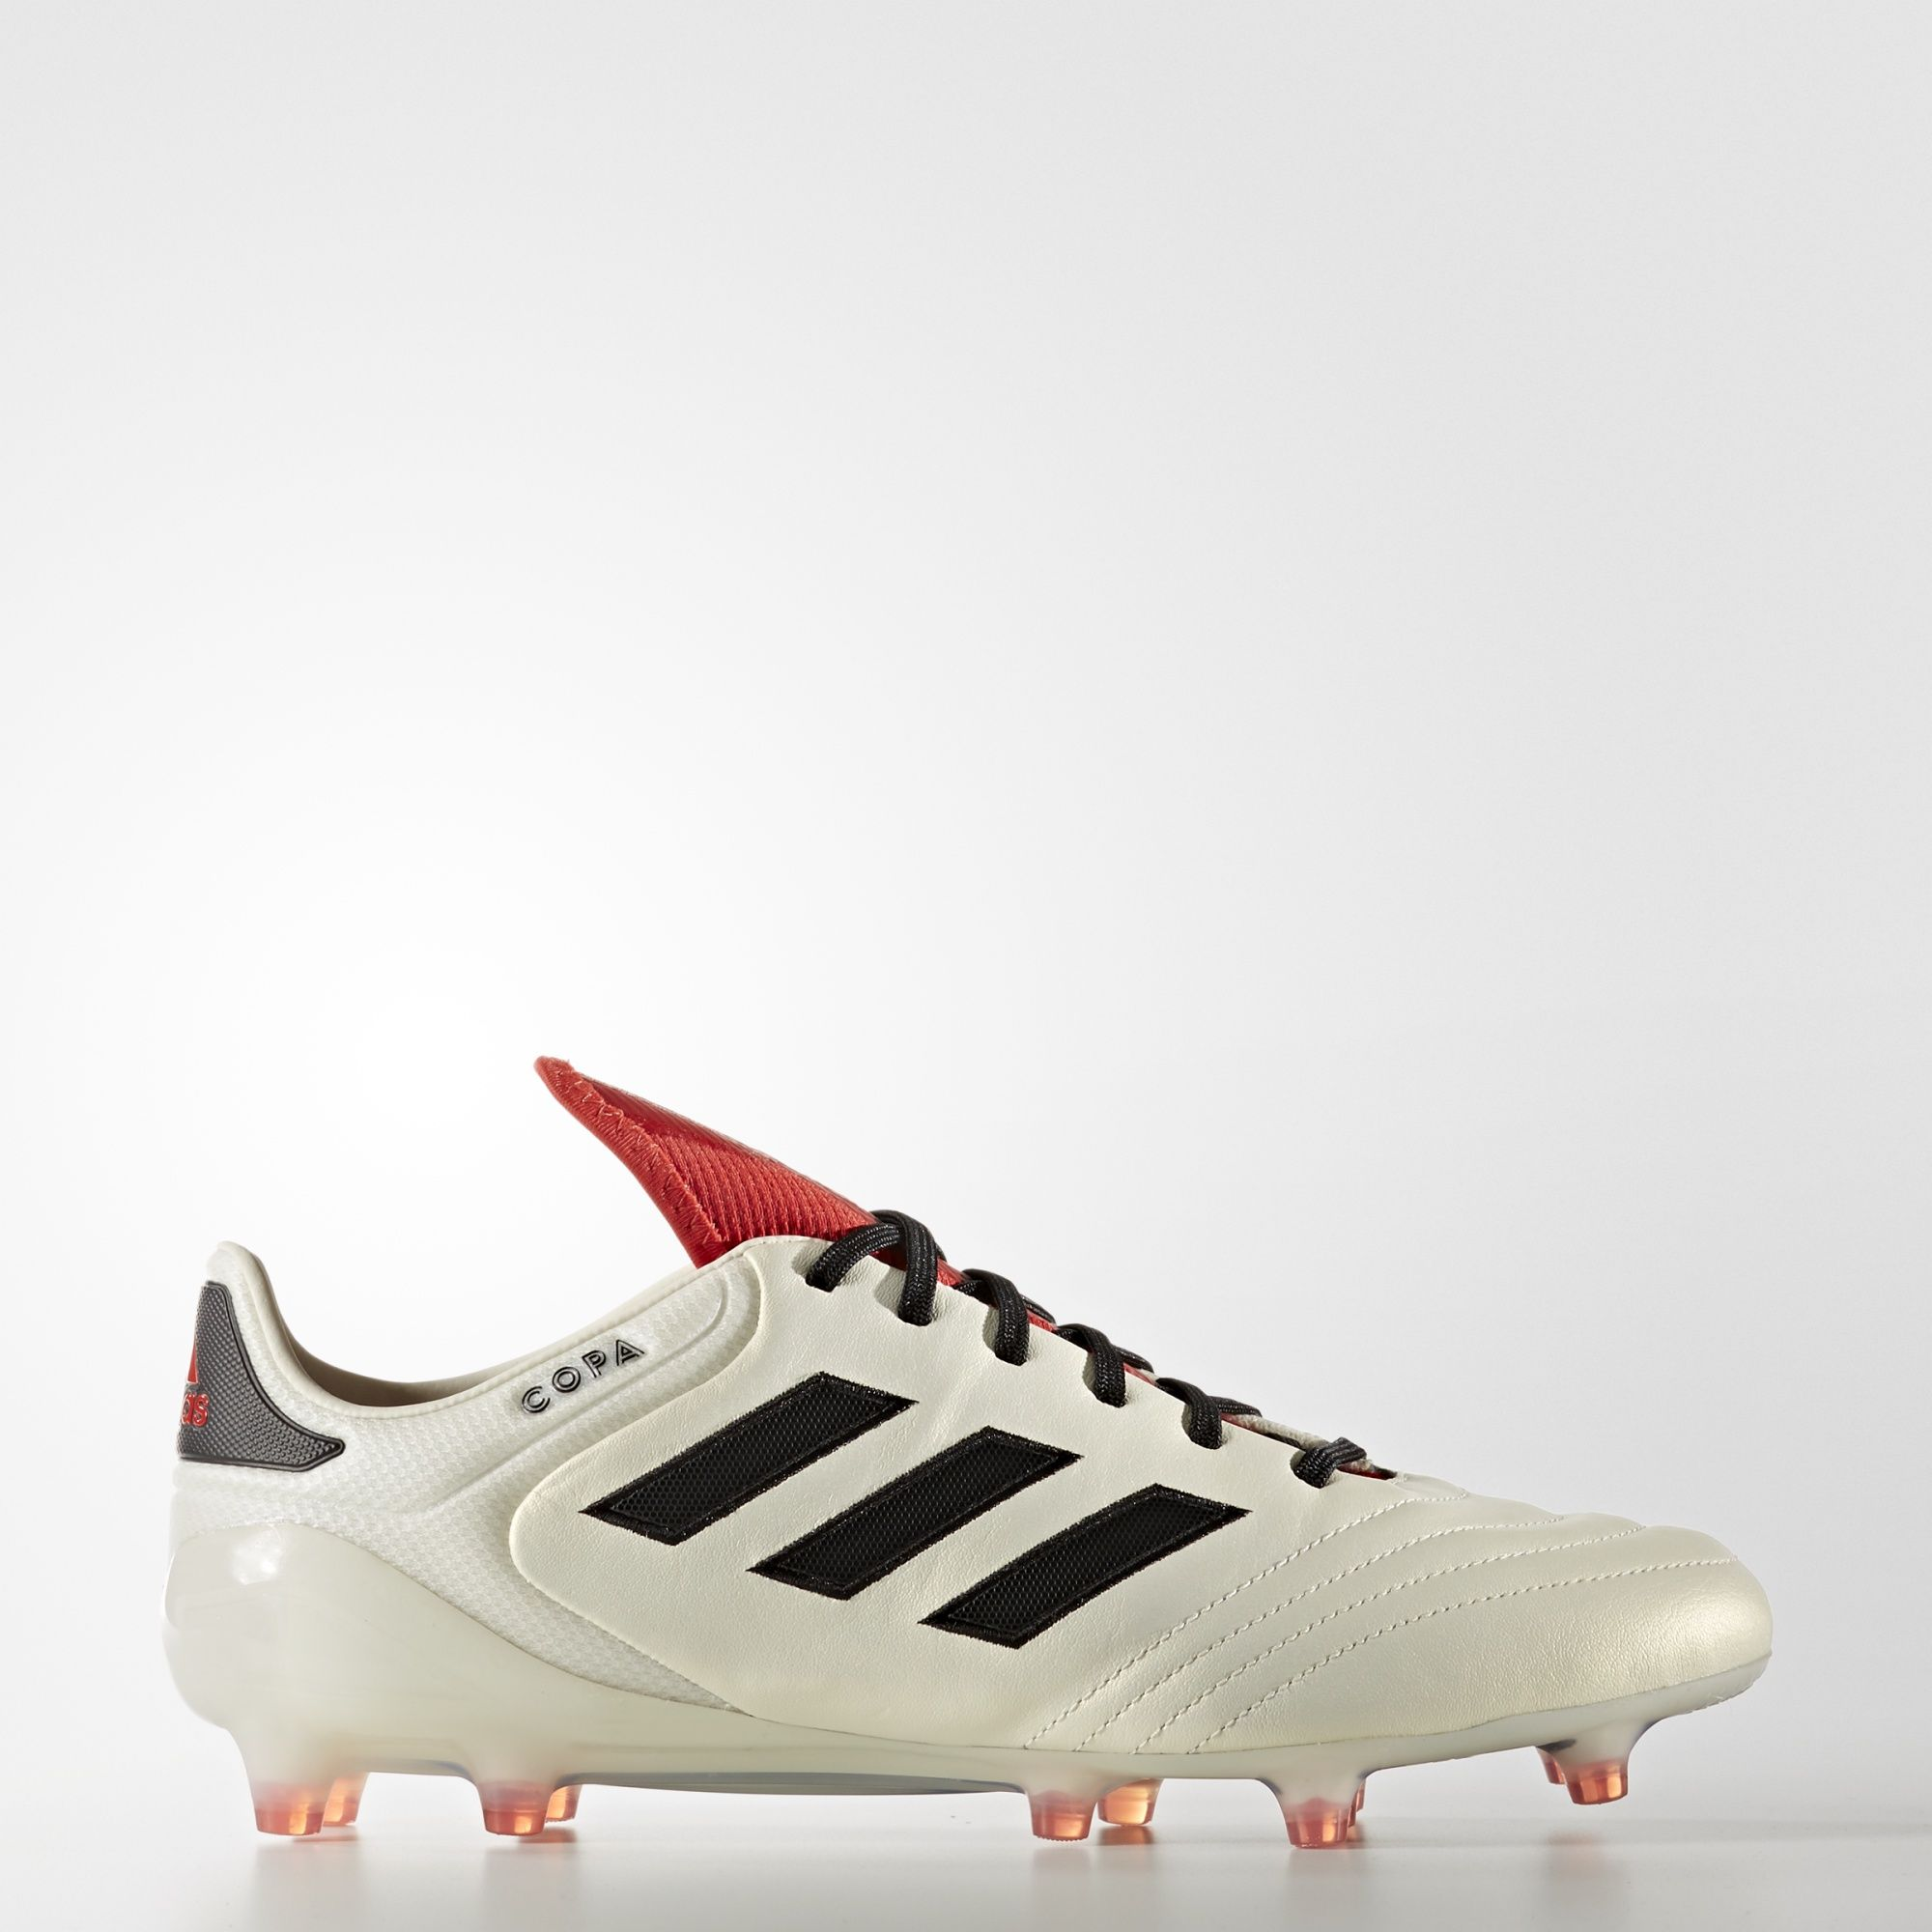 57e91f838a1 Click to enlarge image  adidas copa 17 1 champagne firm ground boots off white core black red a.jpg  ...